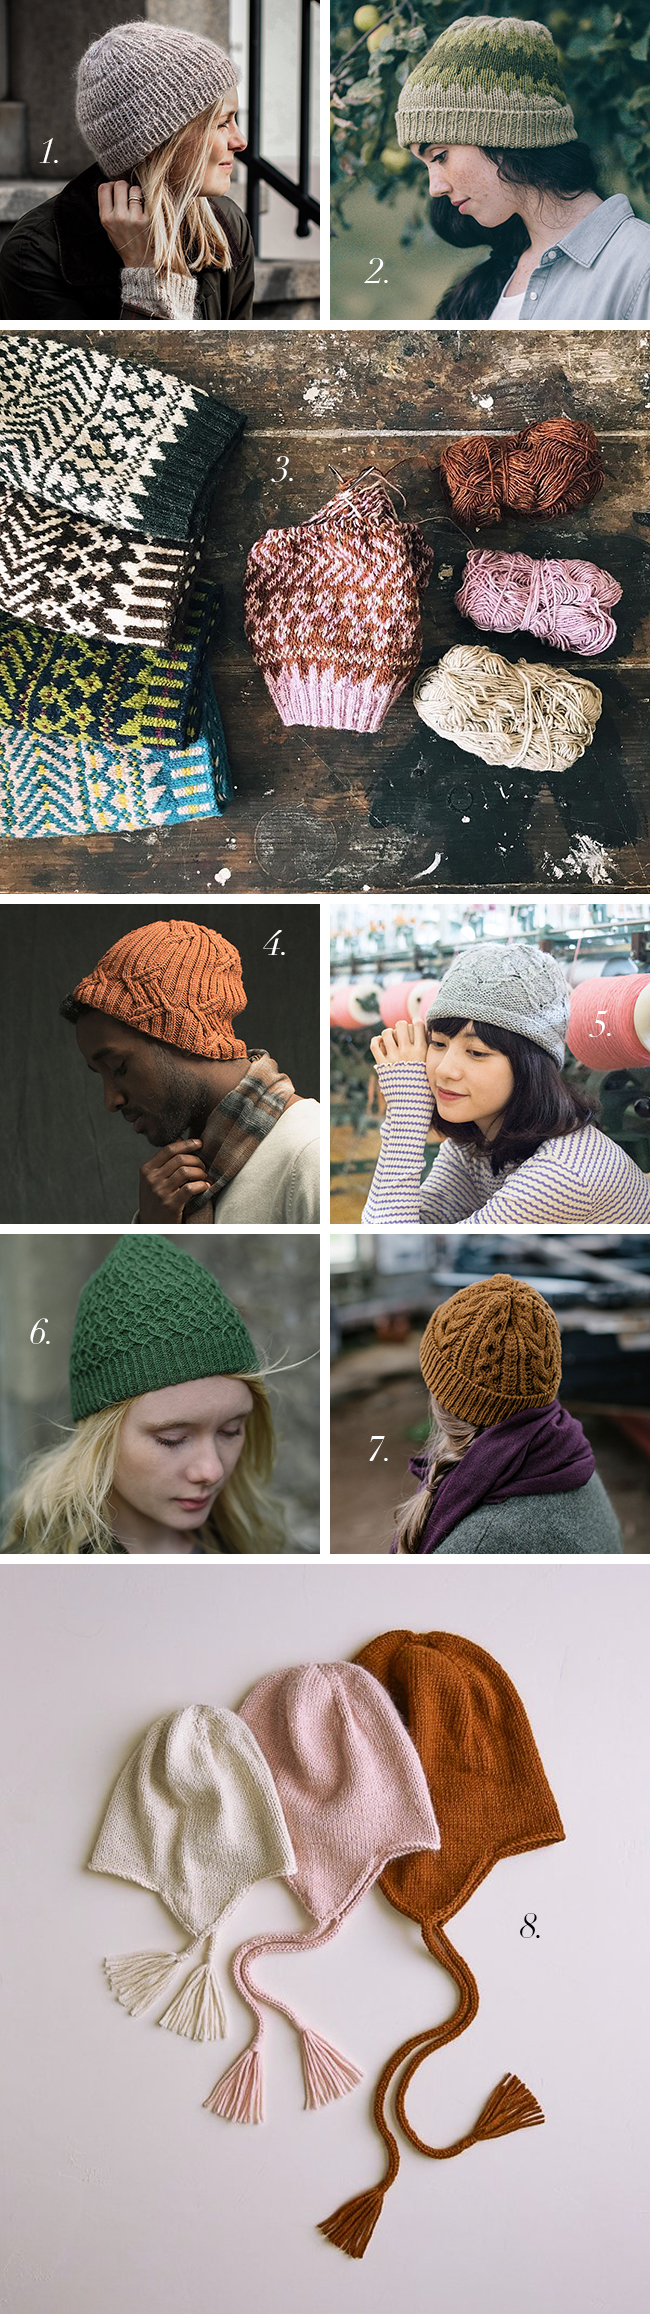 New Favorites: (Holiday) hat mania!